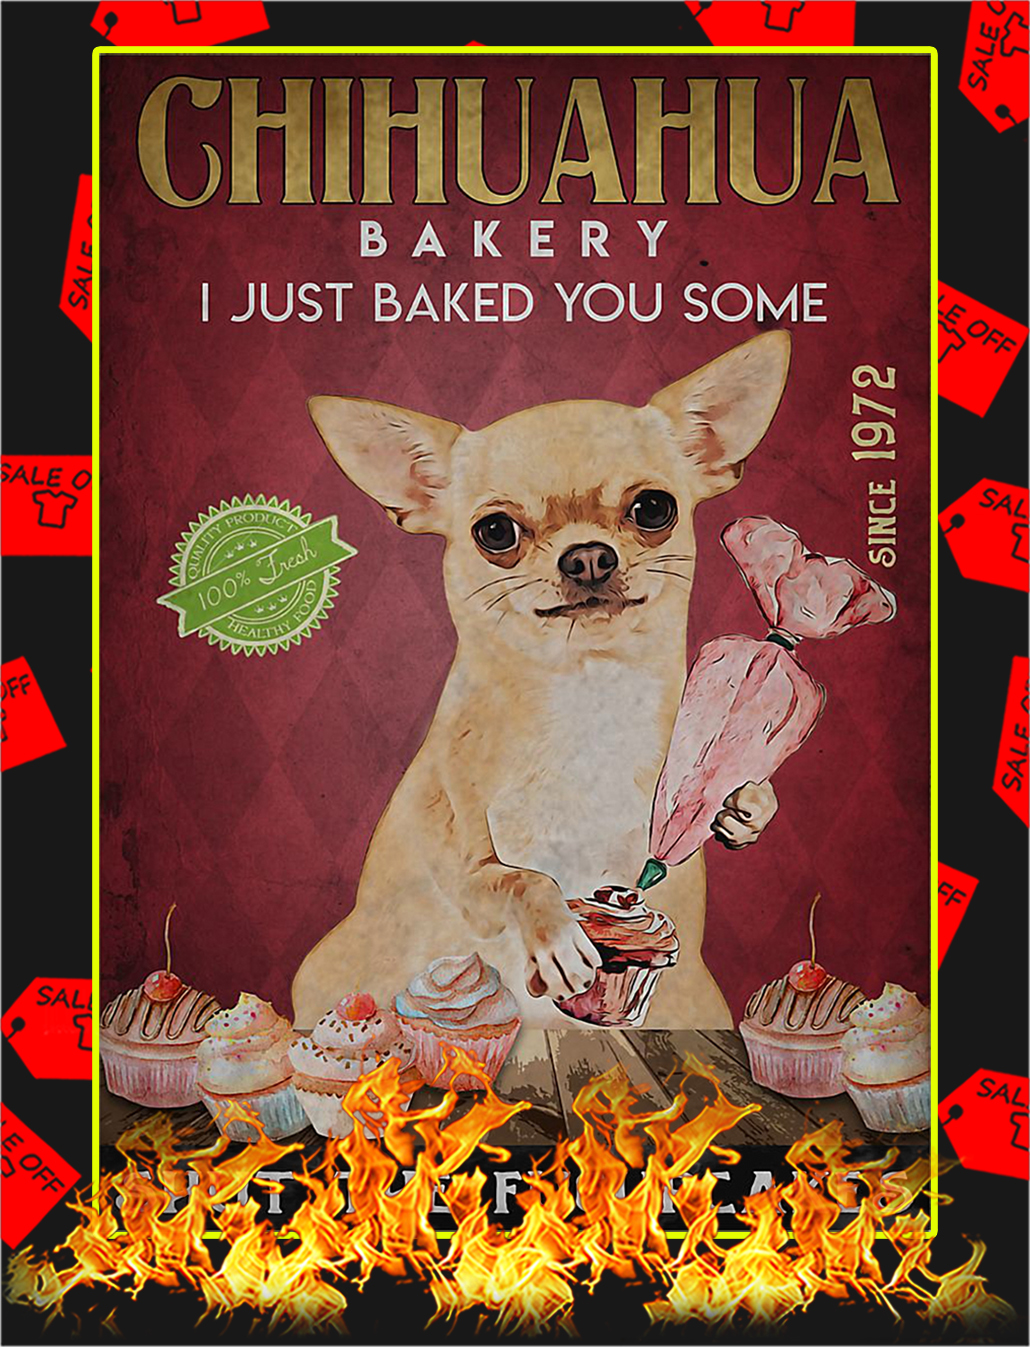 Chihuahua bakery I just baked you some poster - A2